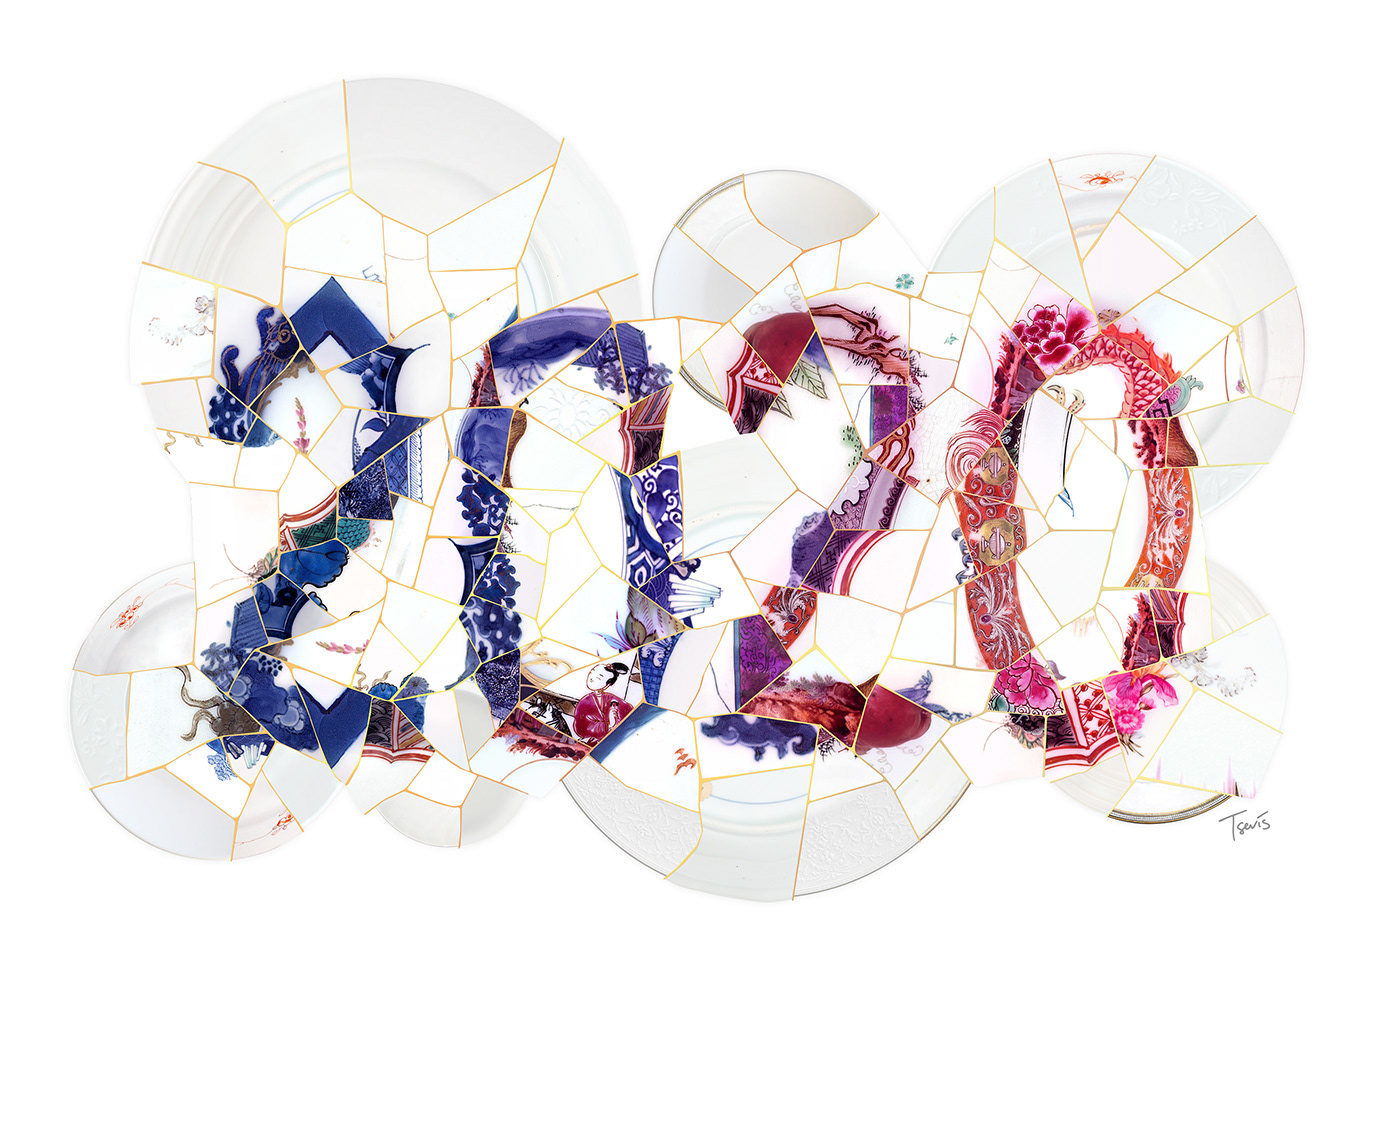 Mosaic composition of the number 2020.